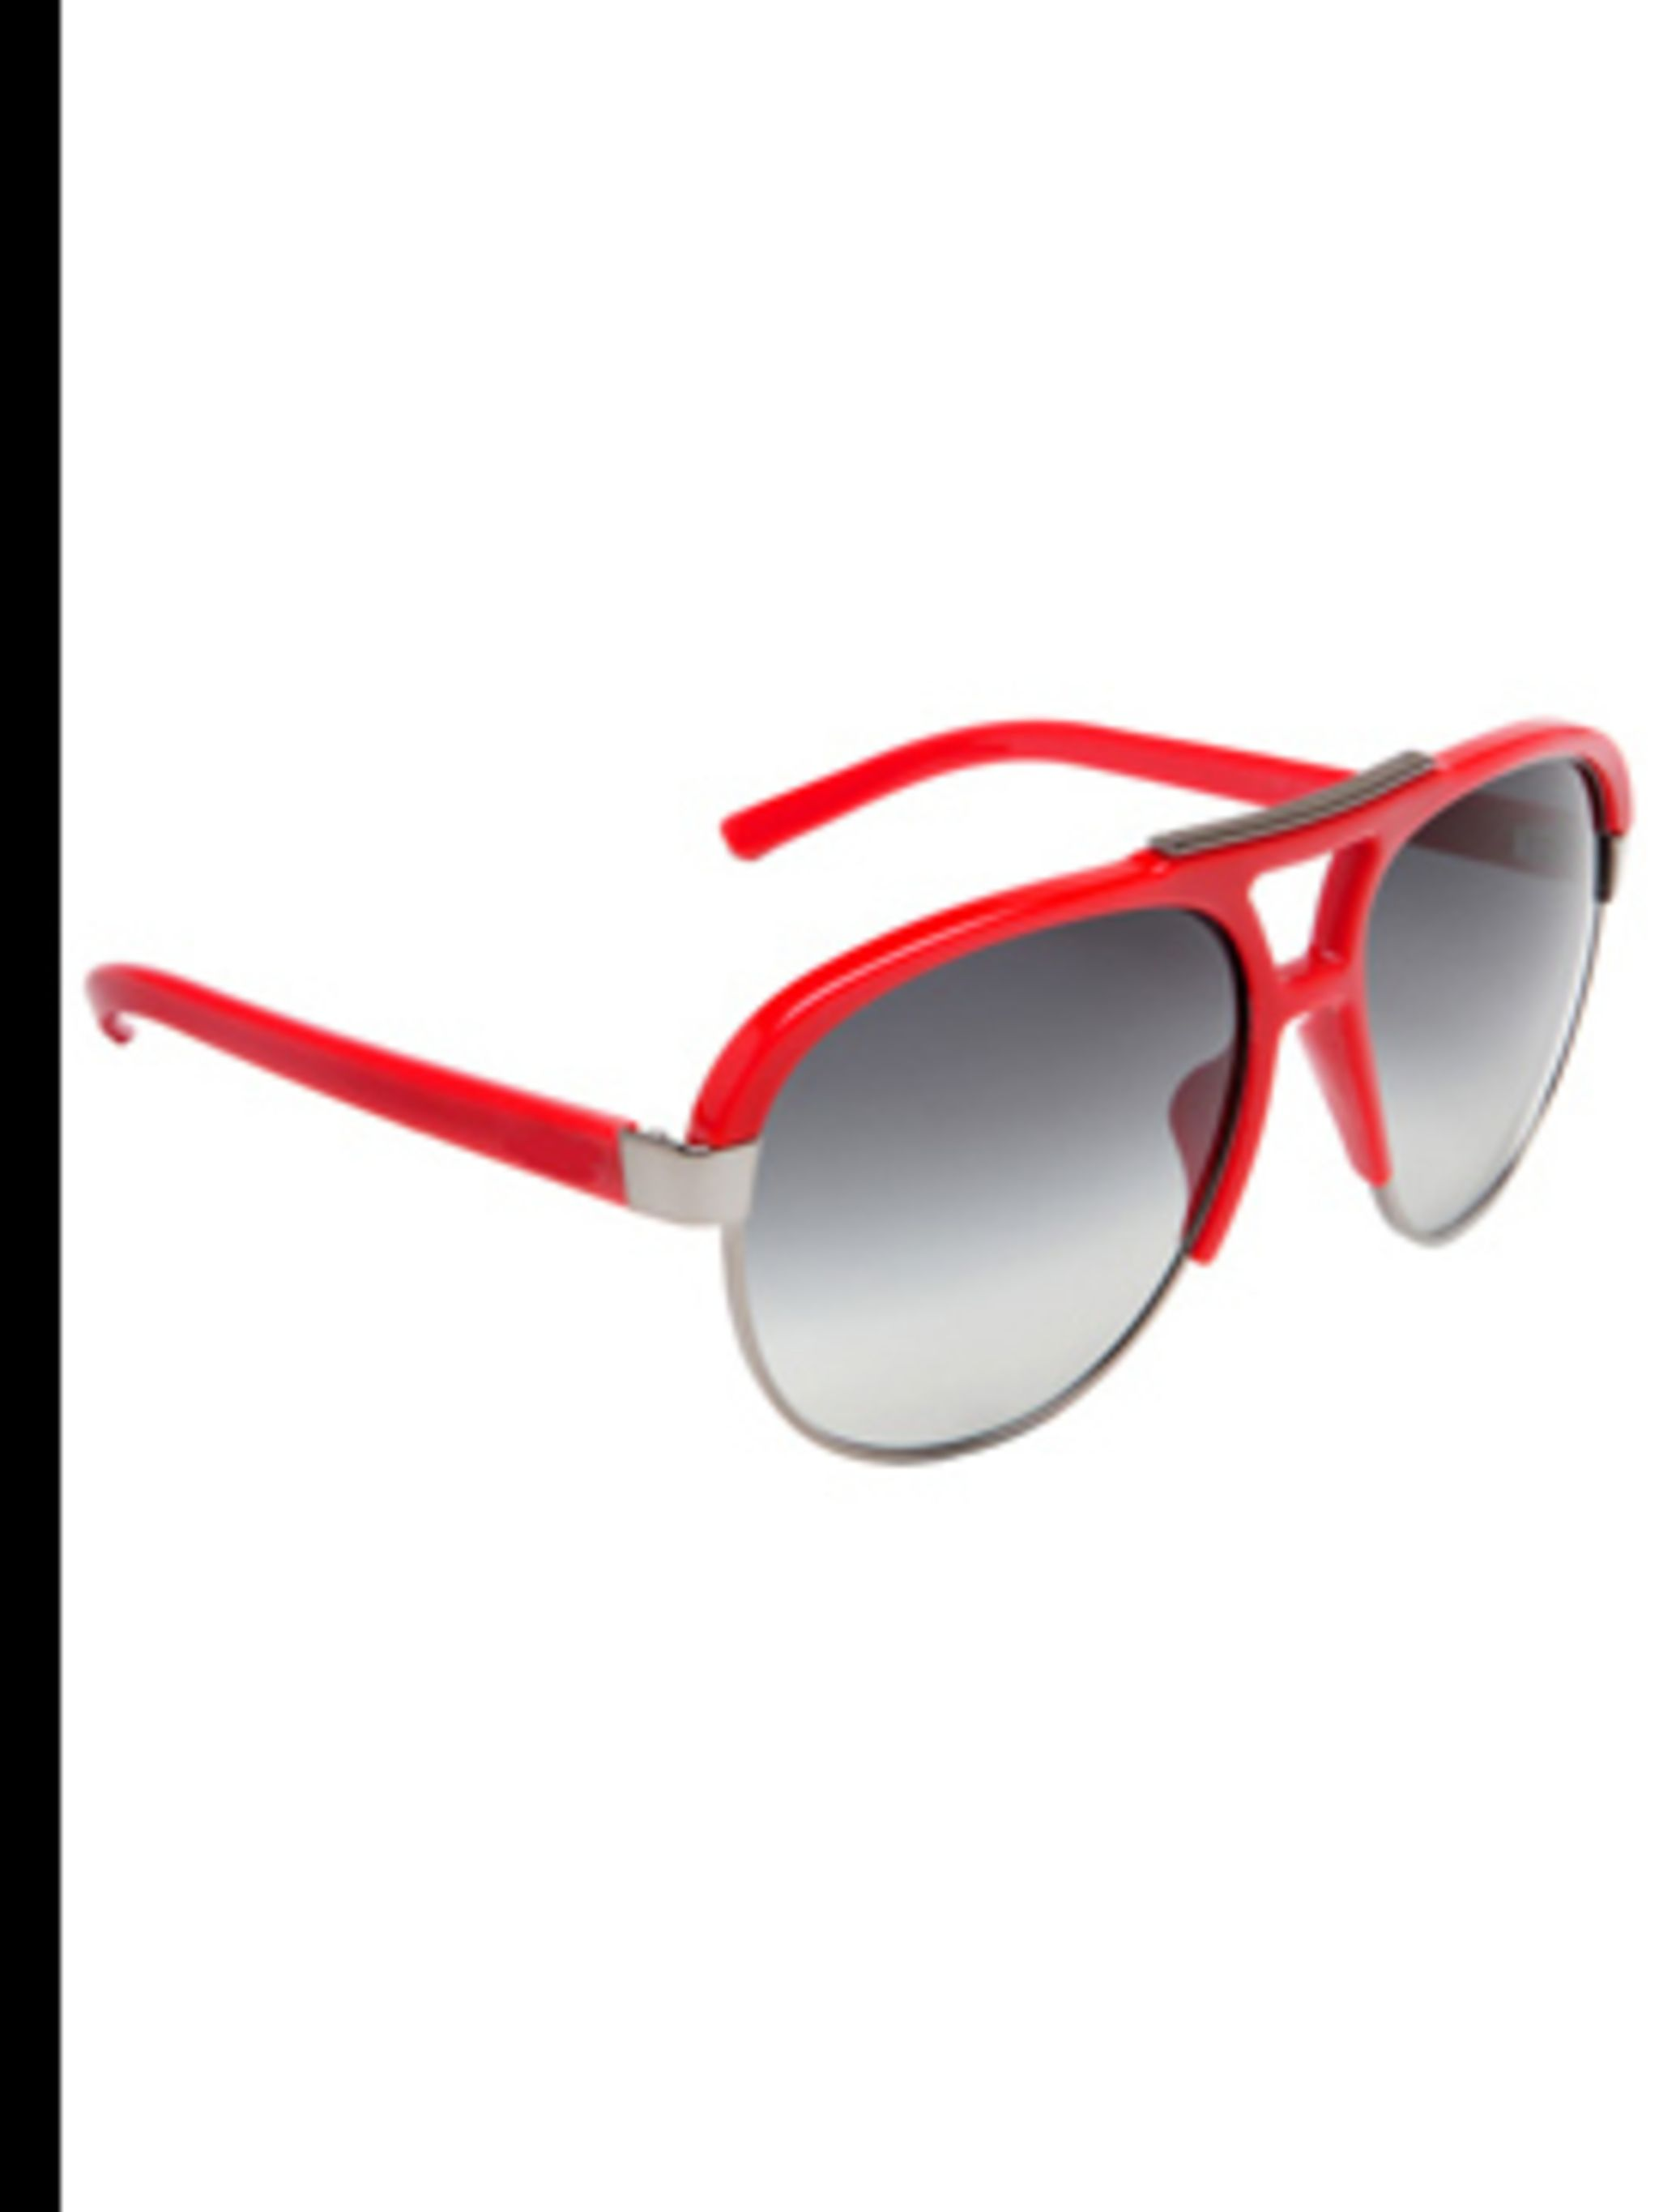 "<p>6051 Sunglasses, £84.50, by D&G at <a href=""http://www.sunglasses-shop.co.uk/uk-sunglasses/D&G-Sunglasses/D&G-6051-Red/9334.htm"">www.sunglasses-shop.co.uk</a></p>"